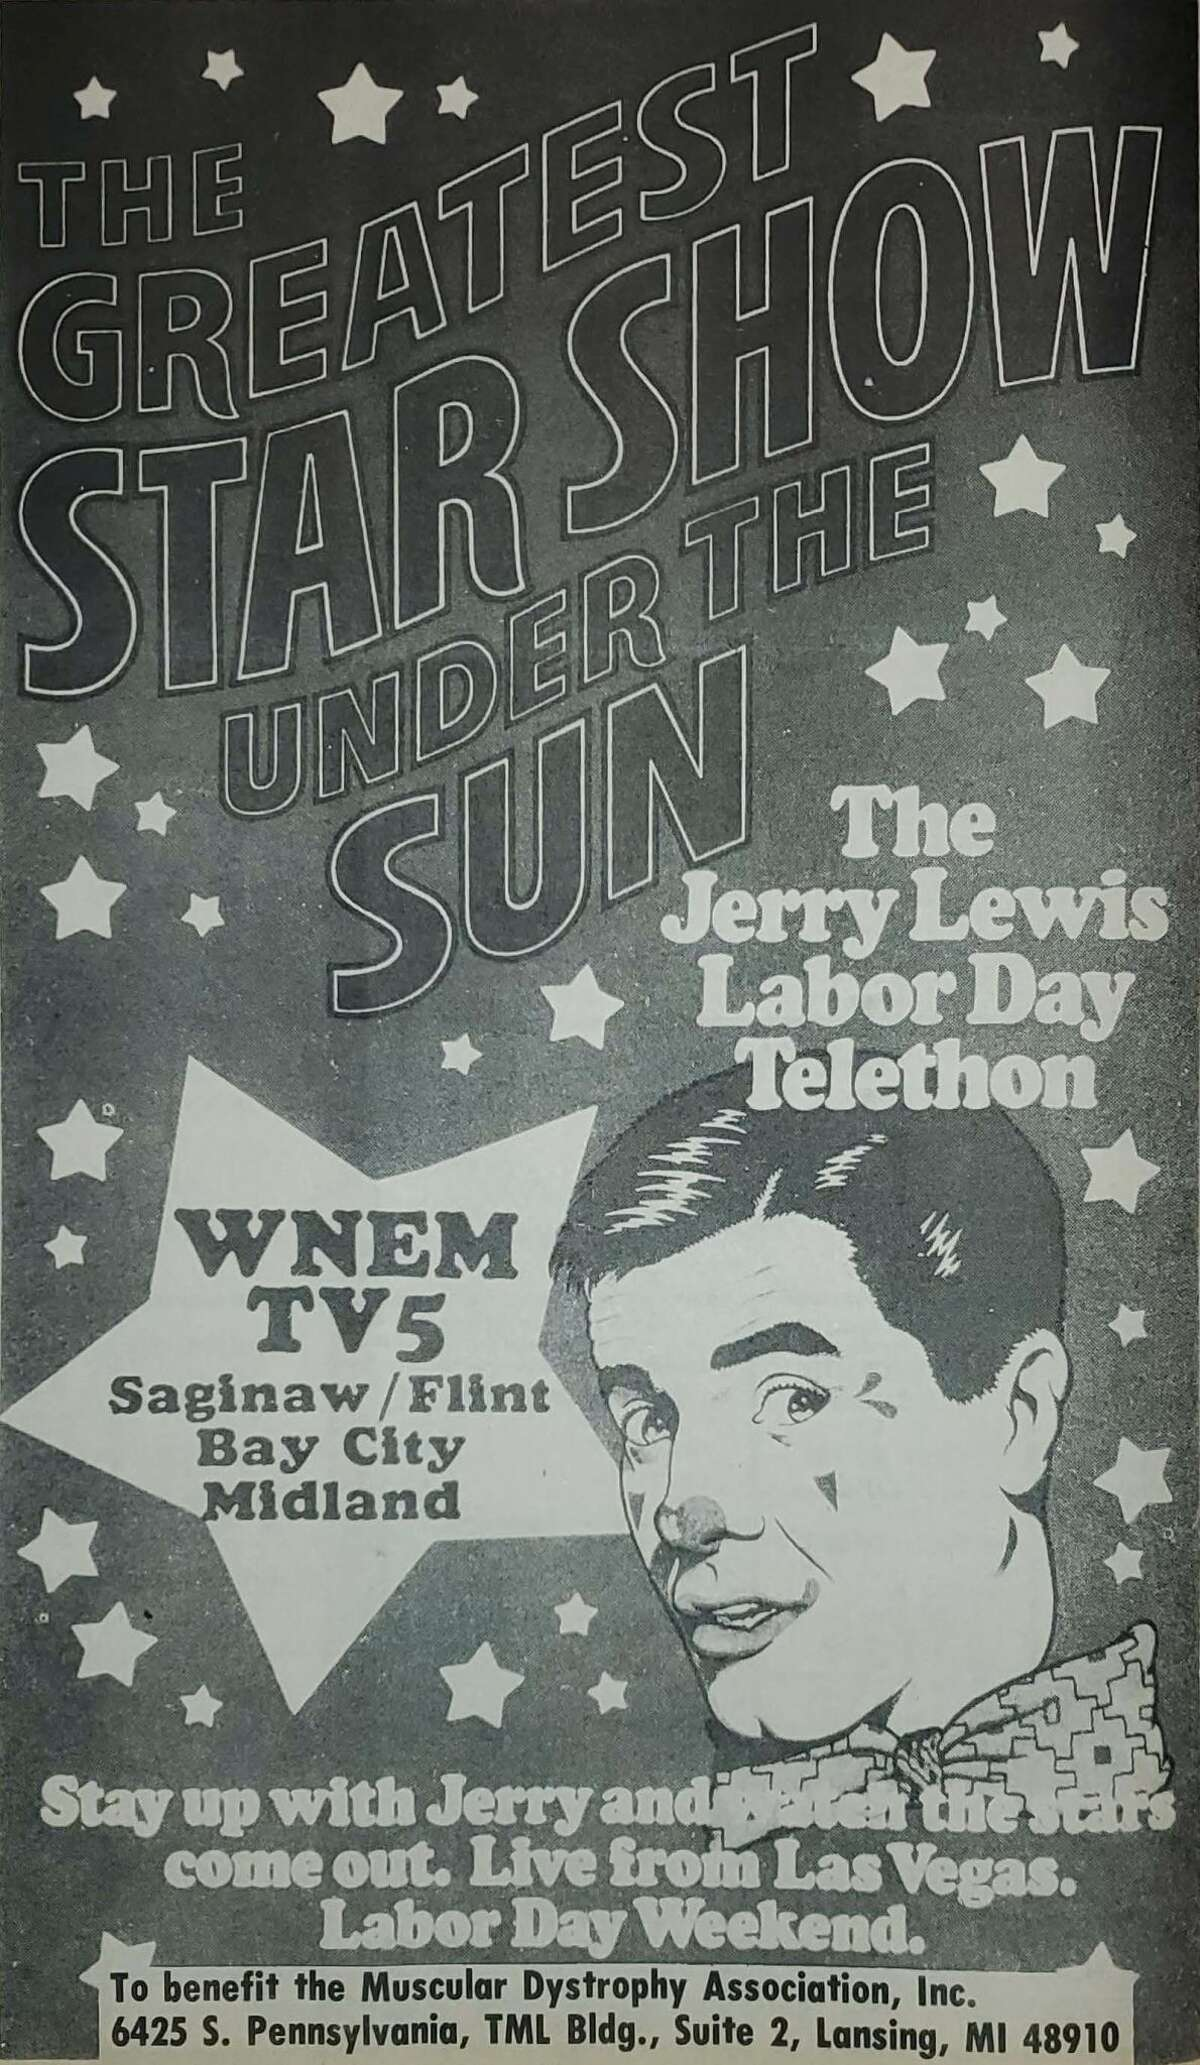 For this week's Tribune Throwback we go back to Sept. 1976.